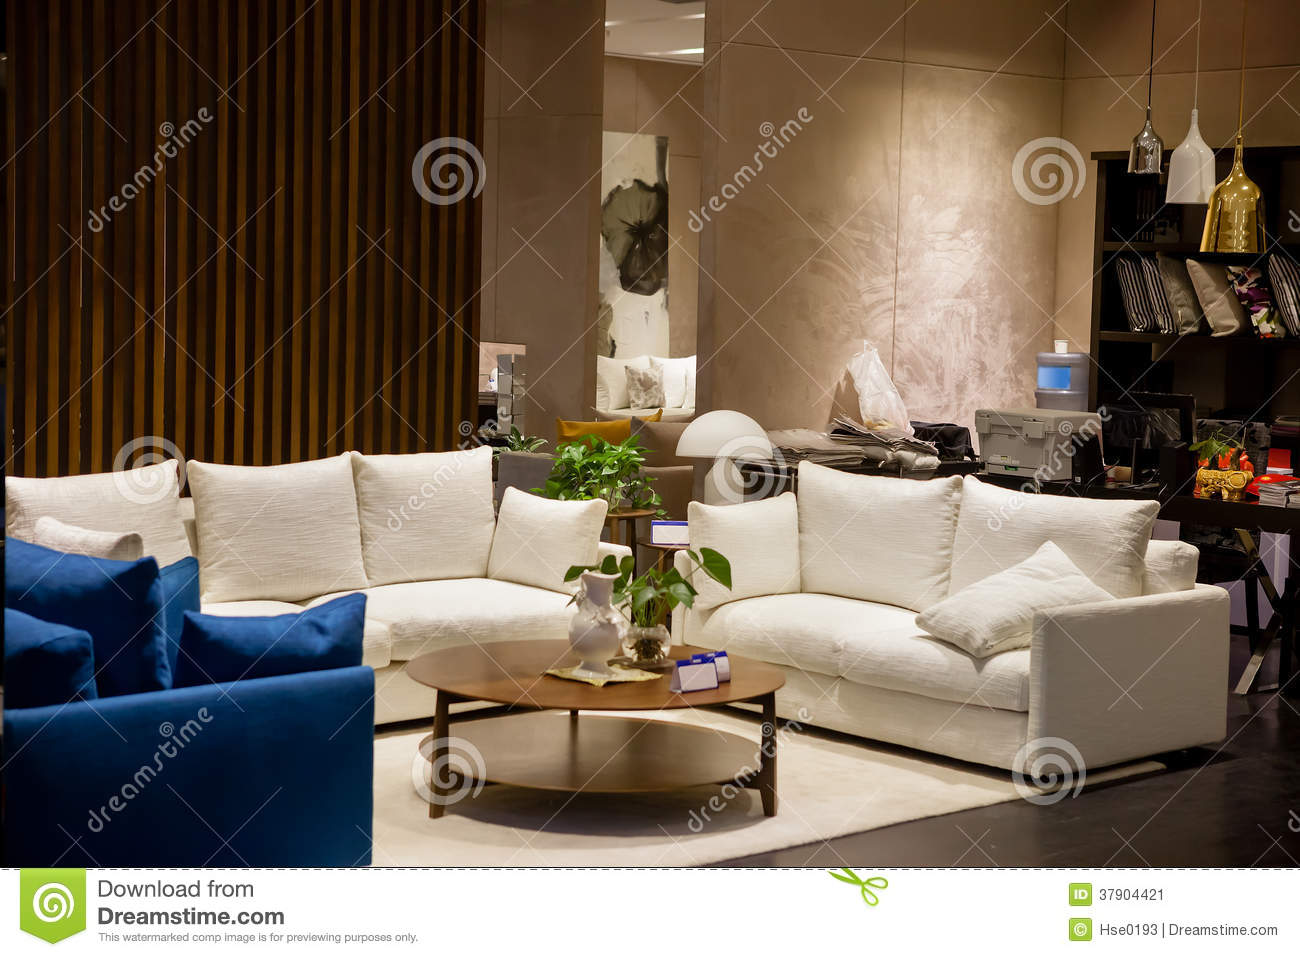 Download Living Room Effect With Spotlight Stock Image   Image Of House,  Luxury: 37904421